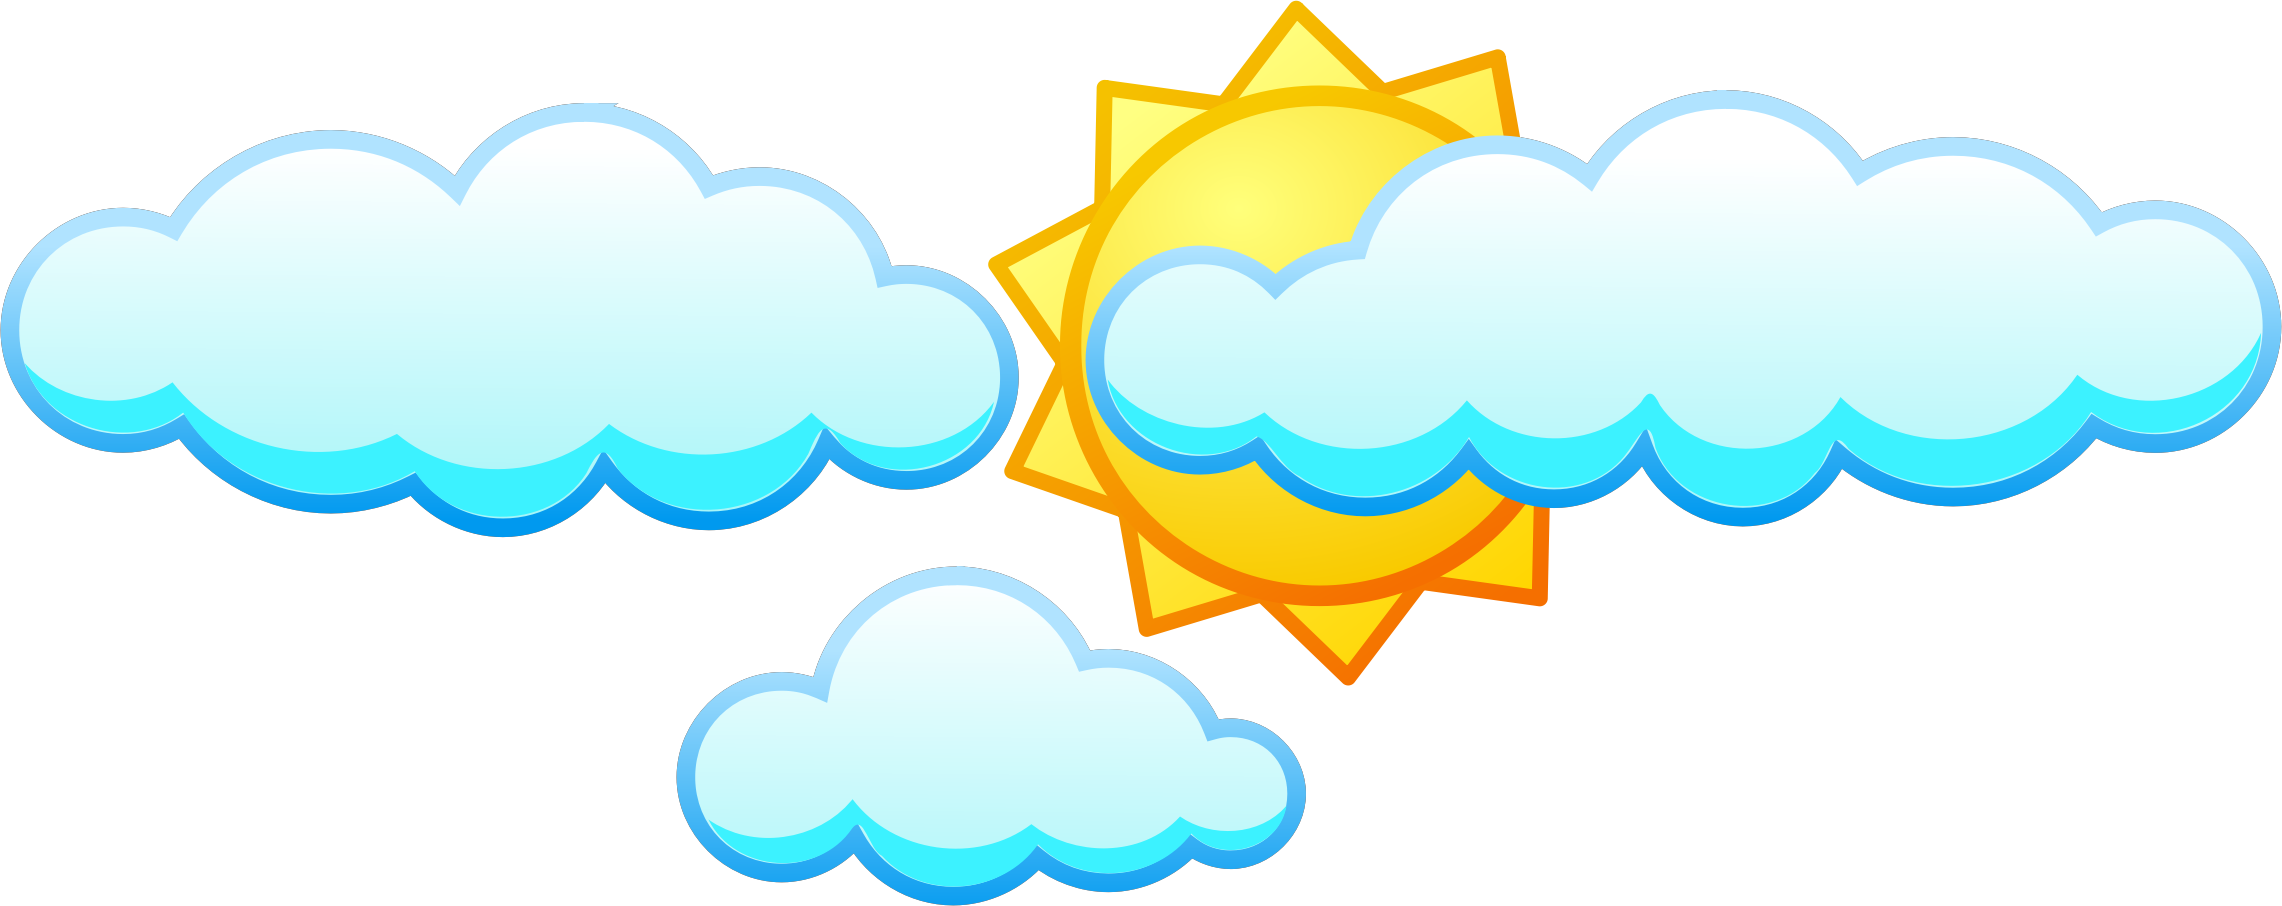 Clipart sun afternoon. Under clouds icons png